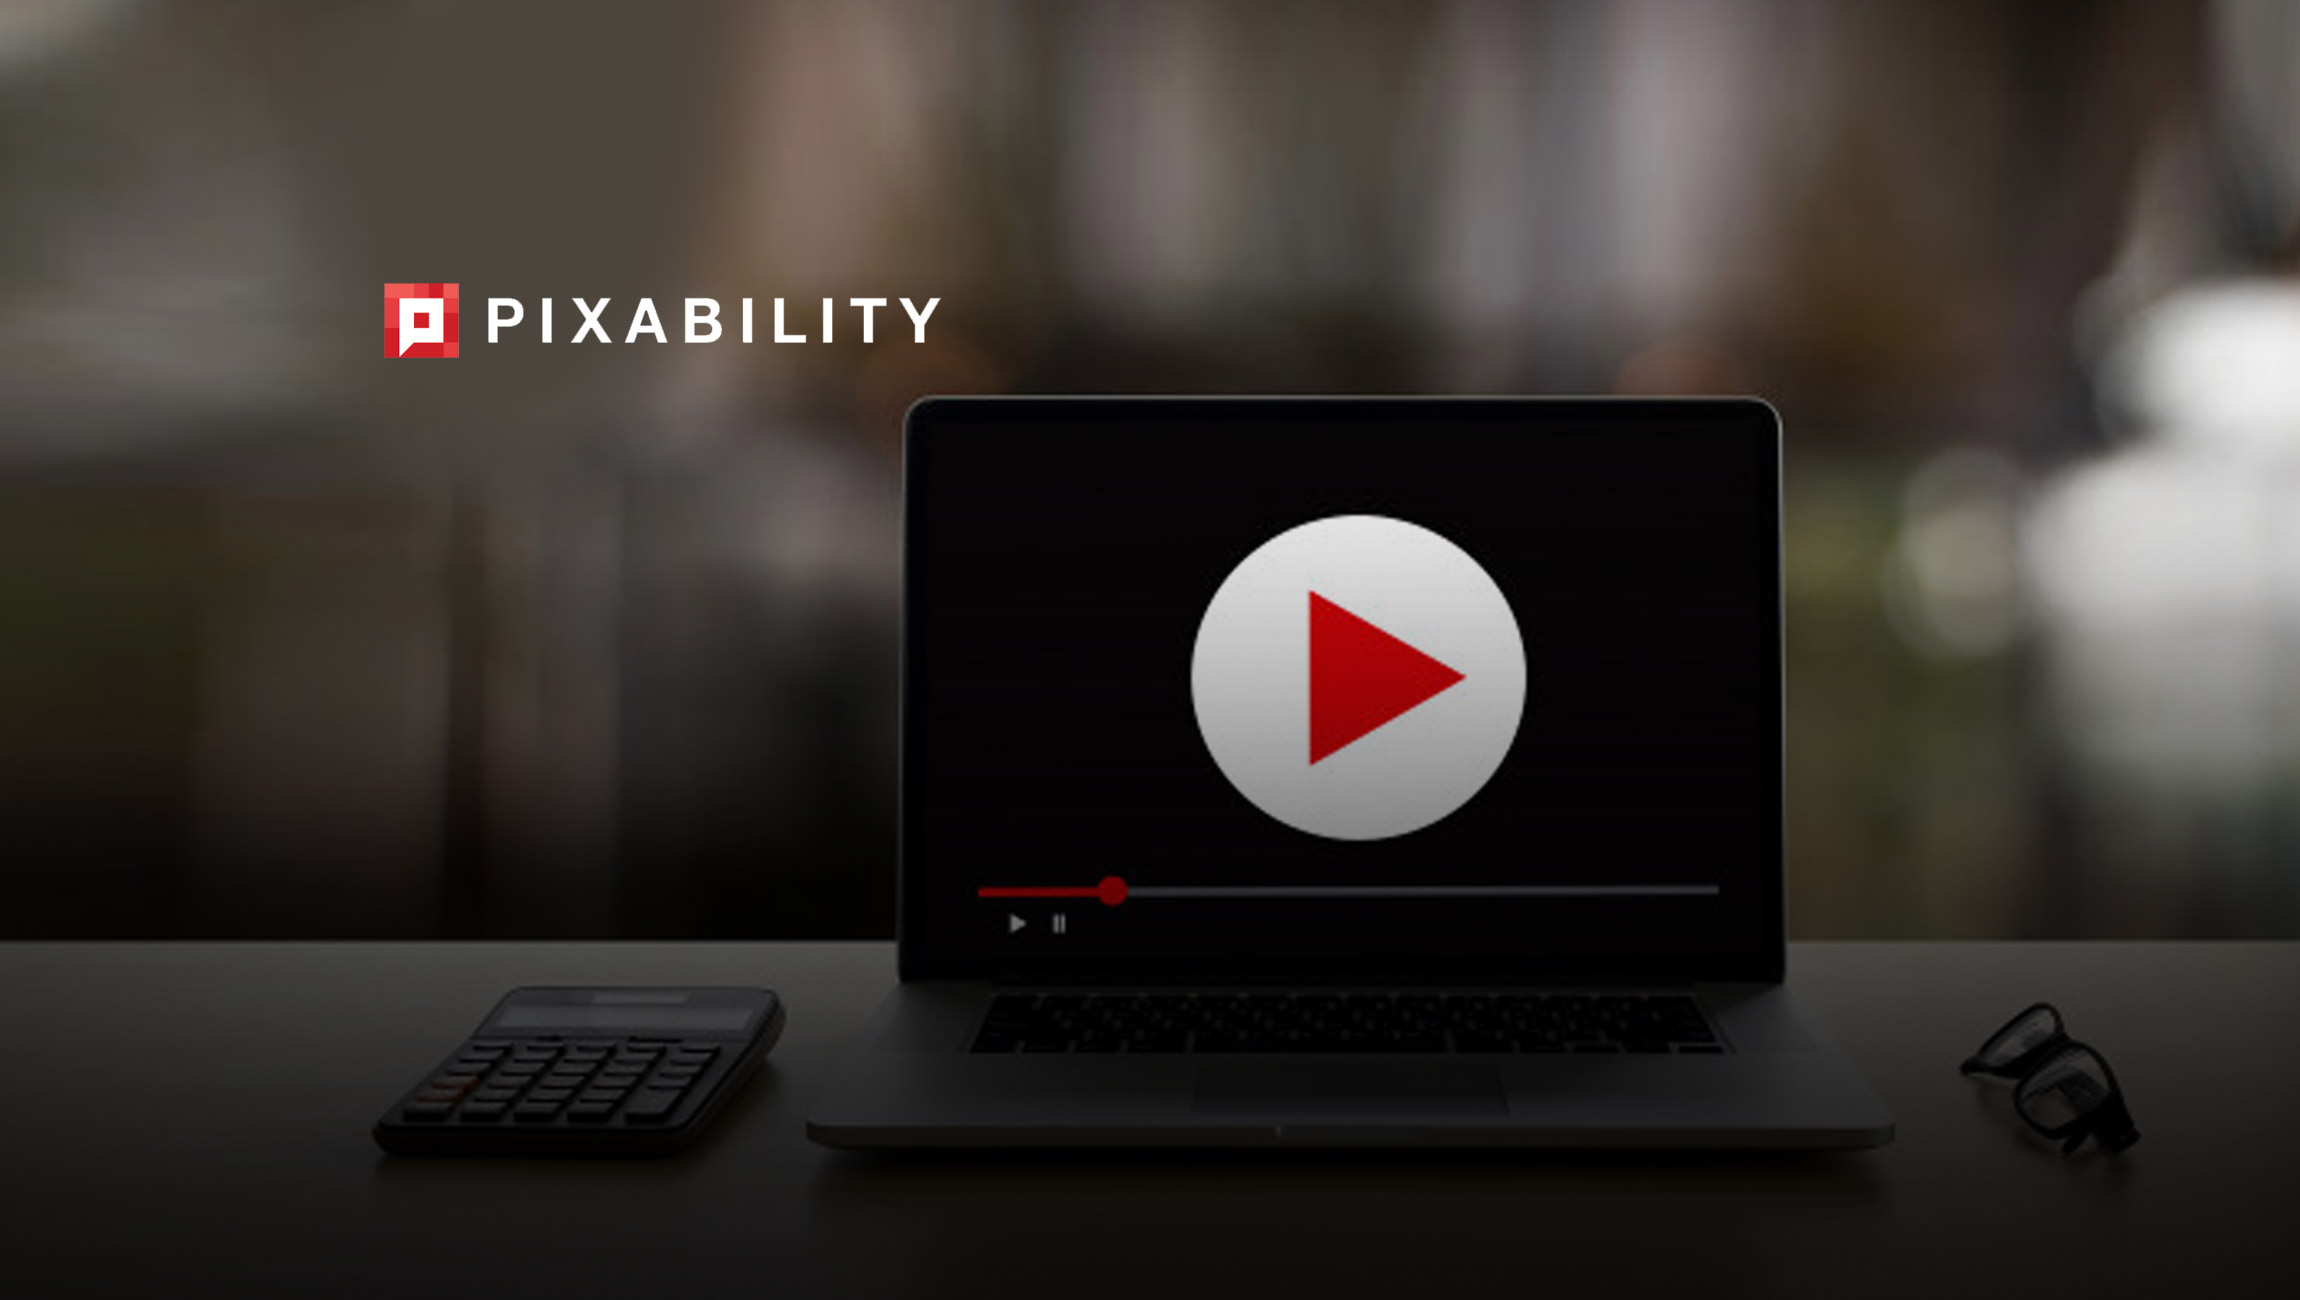 Pixability Announces Launch Of BrandTrack, The First Software Platform That Helps Marketers Track Their Brand's Presence On YouTube To Drive Better Results